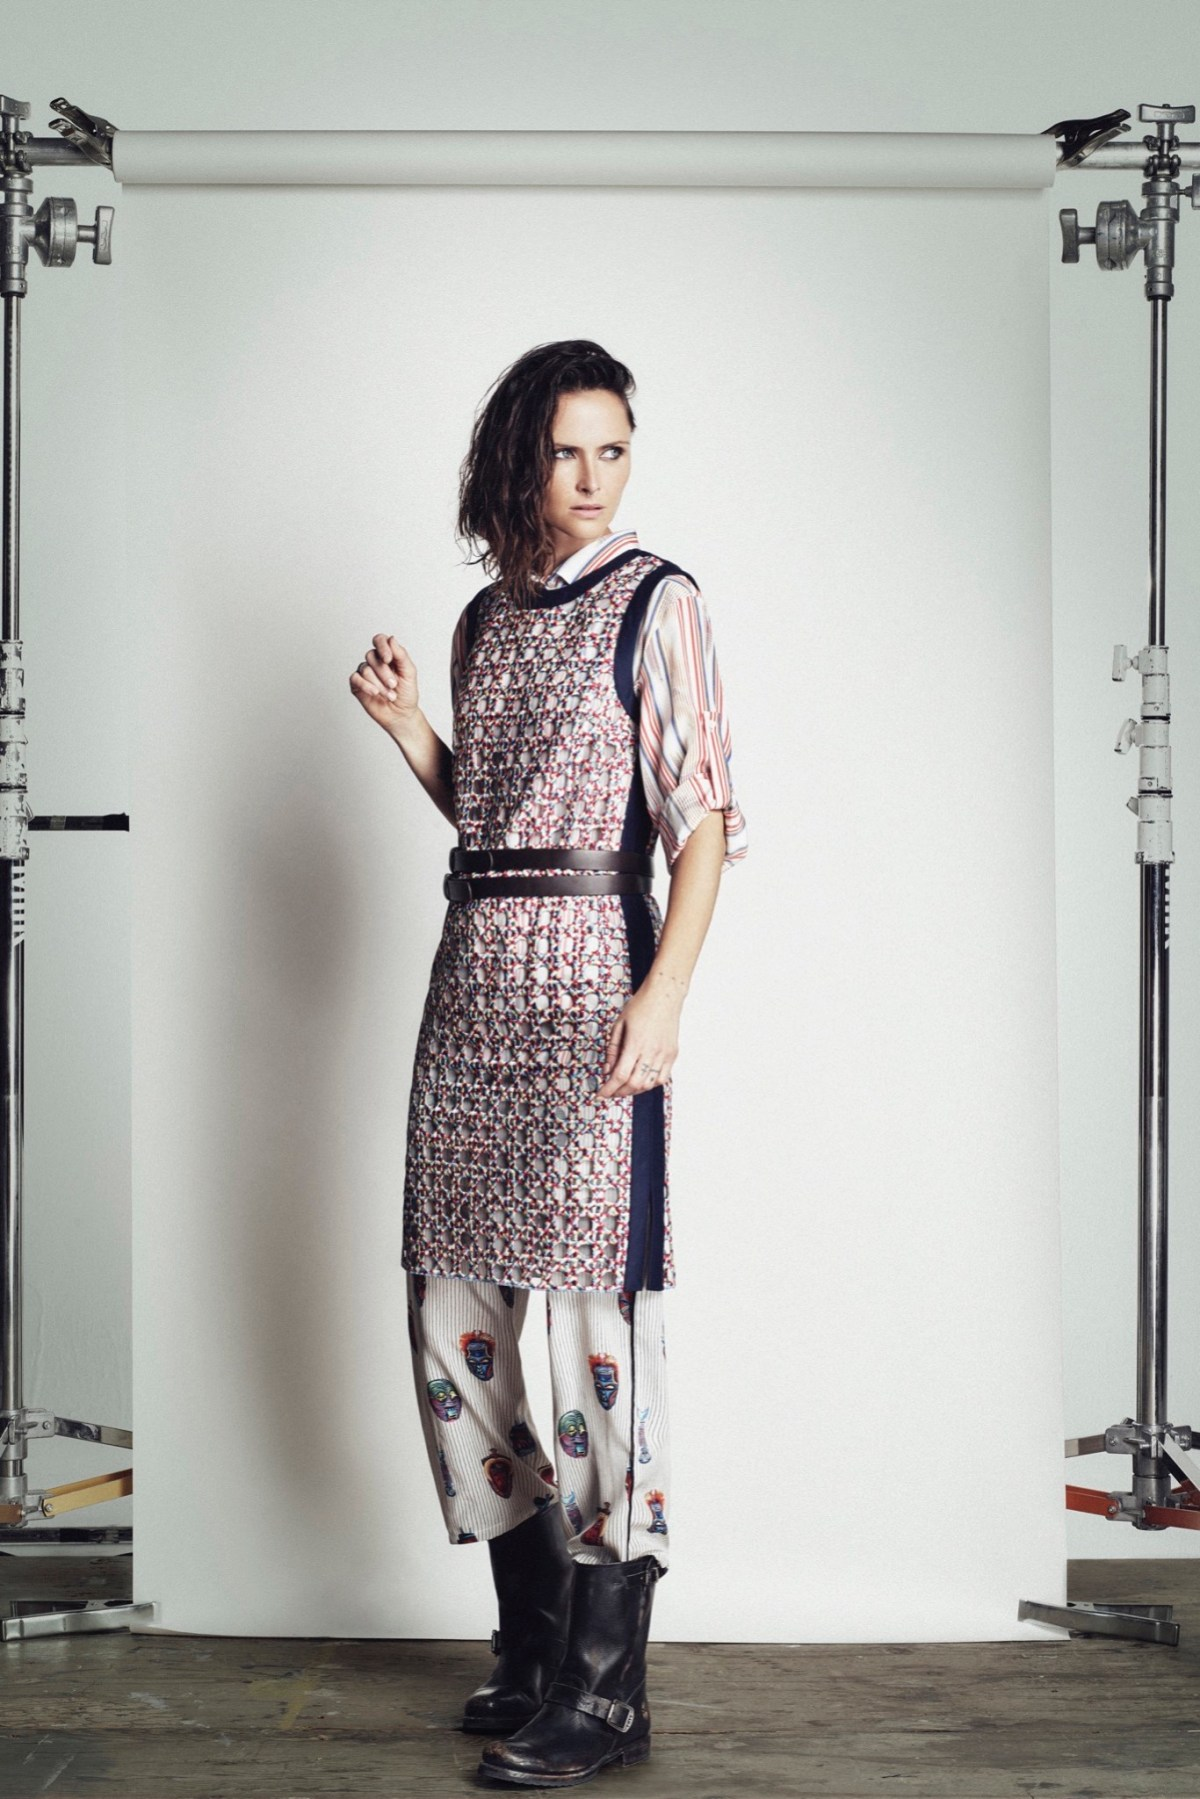 bcbg max aziria analysis Bcbg maxazria brand covers the brand analysis in terms of swot, stp and competition along with the above analysis, segmentation, target group and positioning the tagline, slogan & usp are covered.